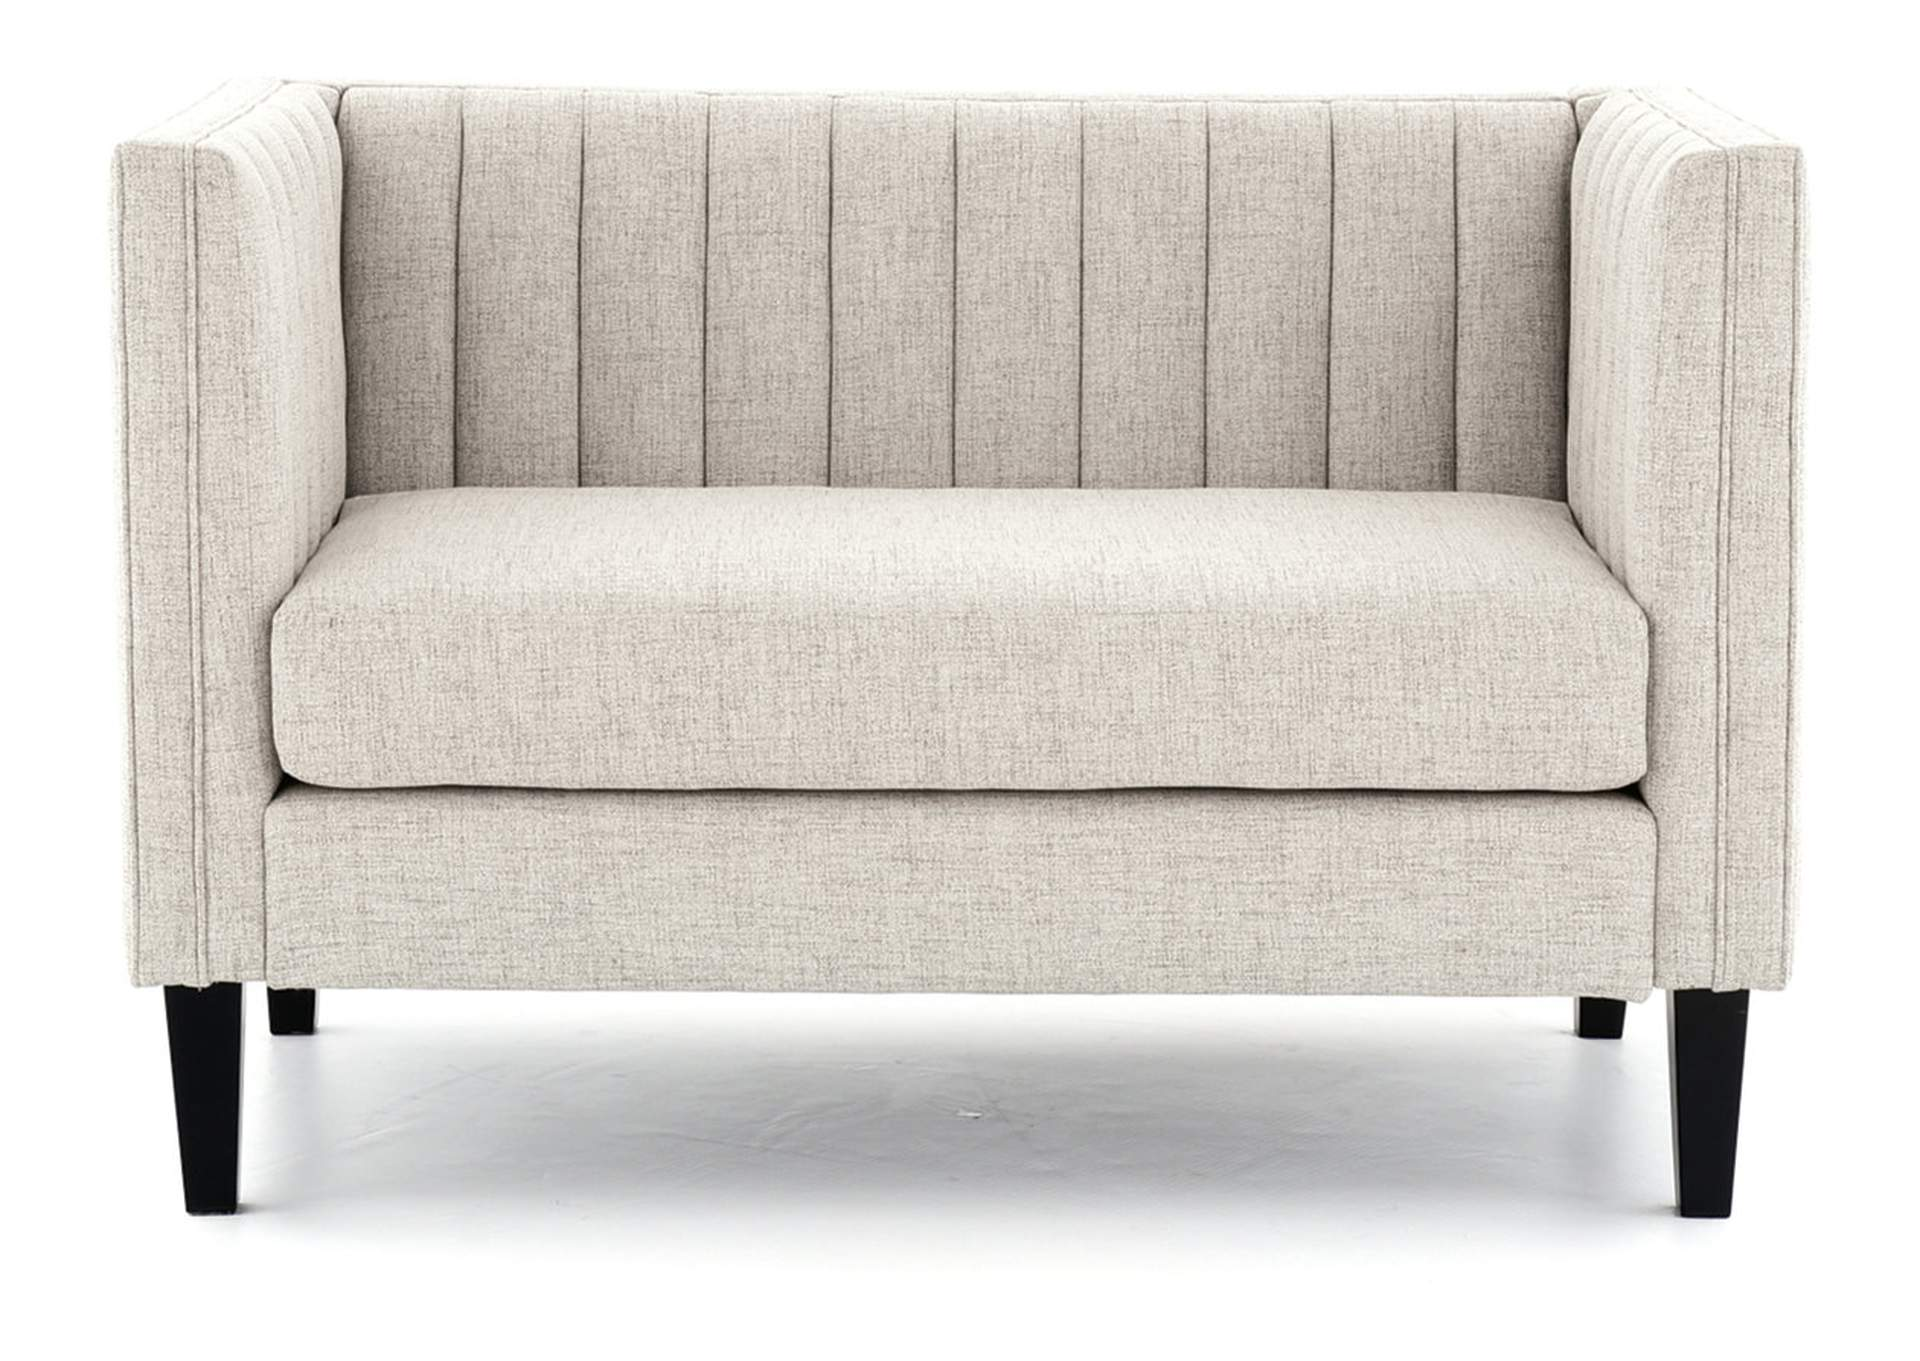 Jeanay Accent Bench,Signature Design By Ashley